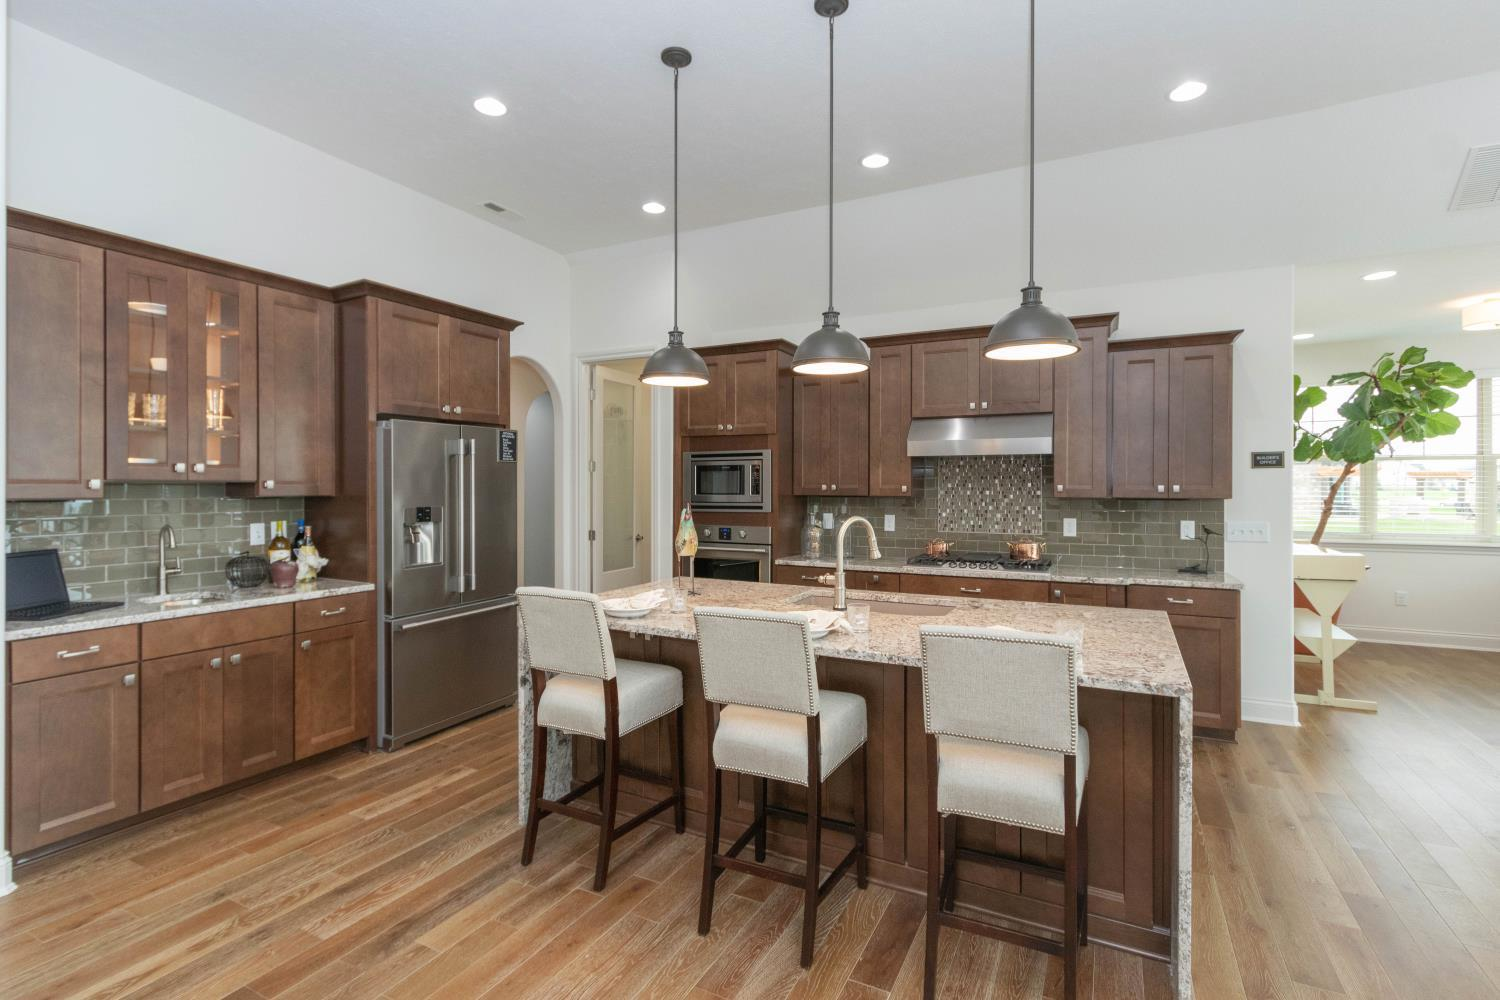 Kitchen featured in The Owl By Shoopman Homes in Indianapolis, IN